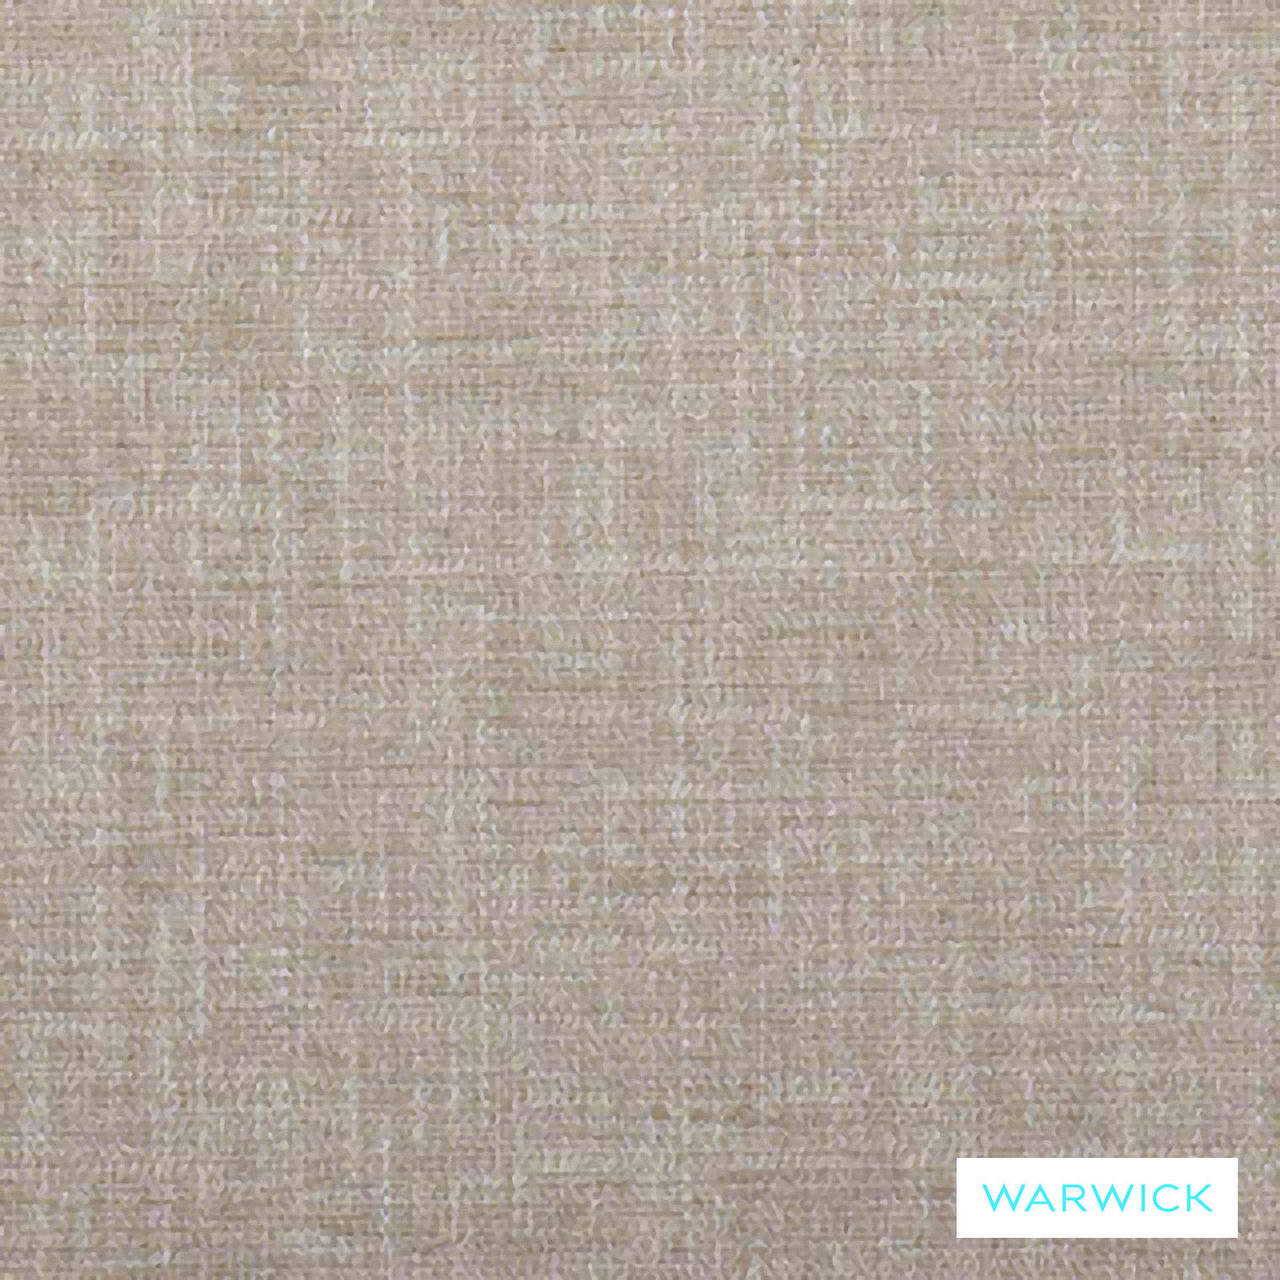 Stone' | Upholstery Fabric - Australian Made, Plain, Synthetic fibre, Traditional, Washable, Tan - Taupe, Commercial Use, Natural